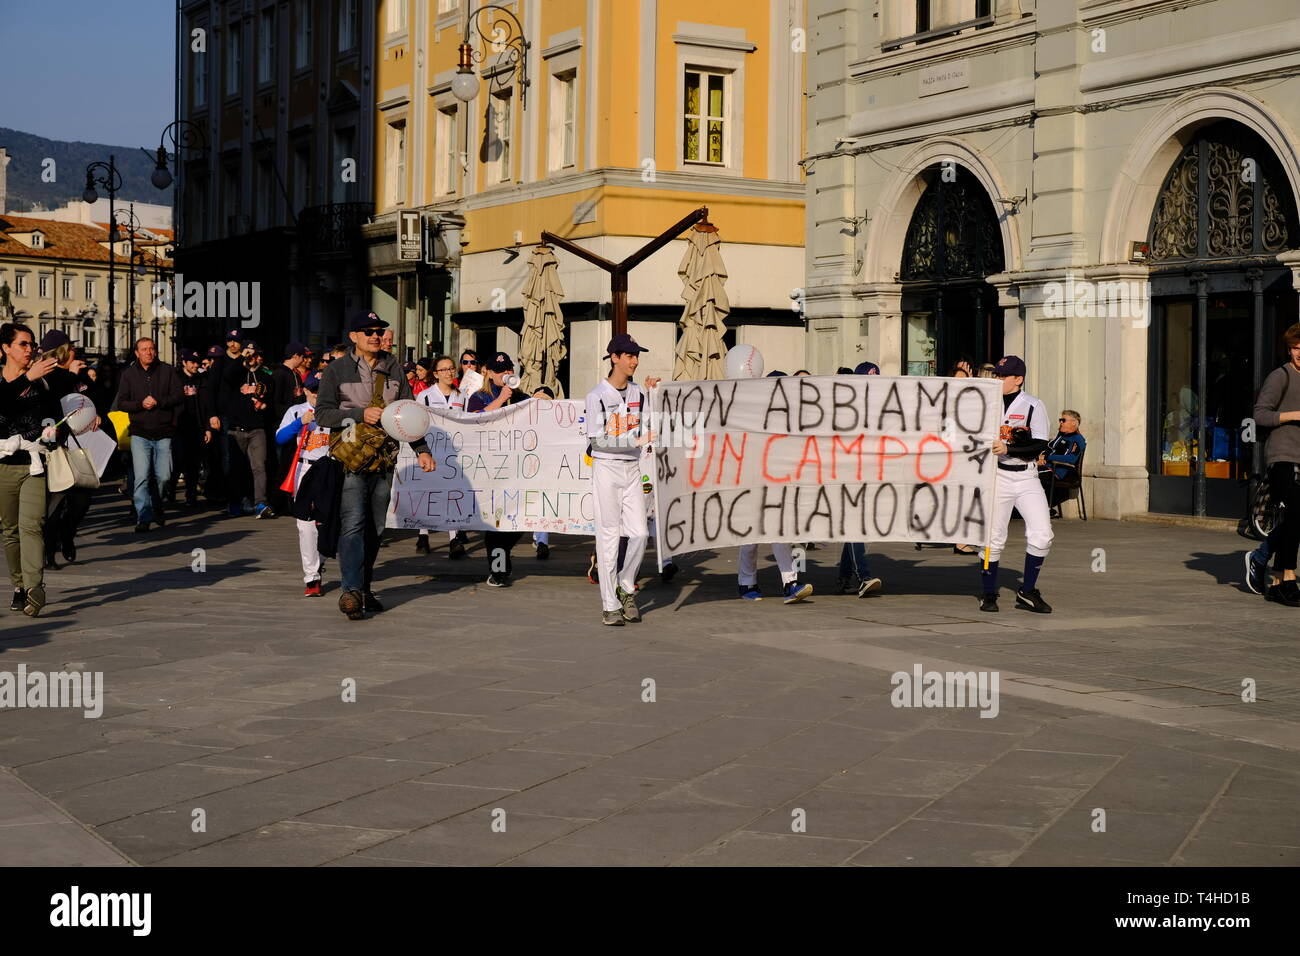 Local kids team protesting on central square that they do not have a playing field for the local baseball team, in Trieste,  Italy - April 16, 2019 Stock Photo